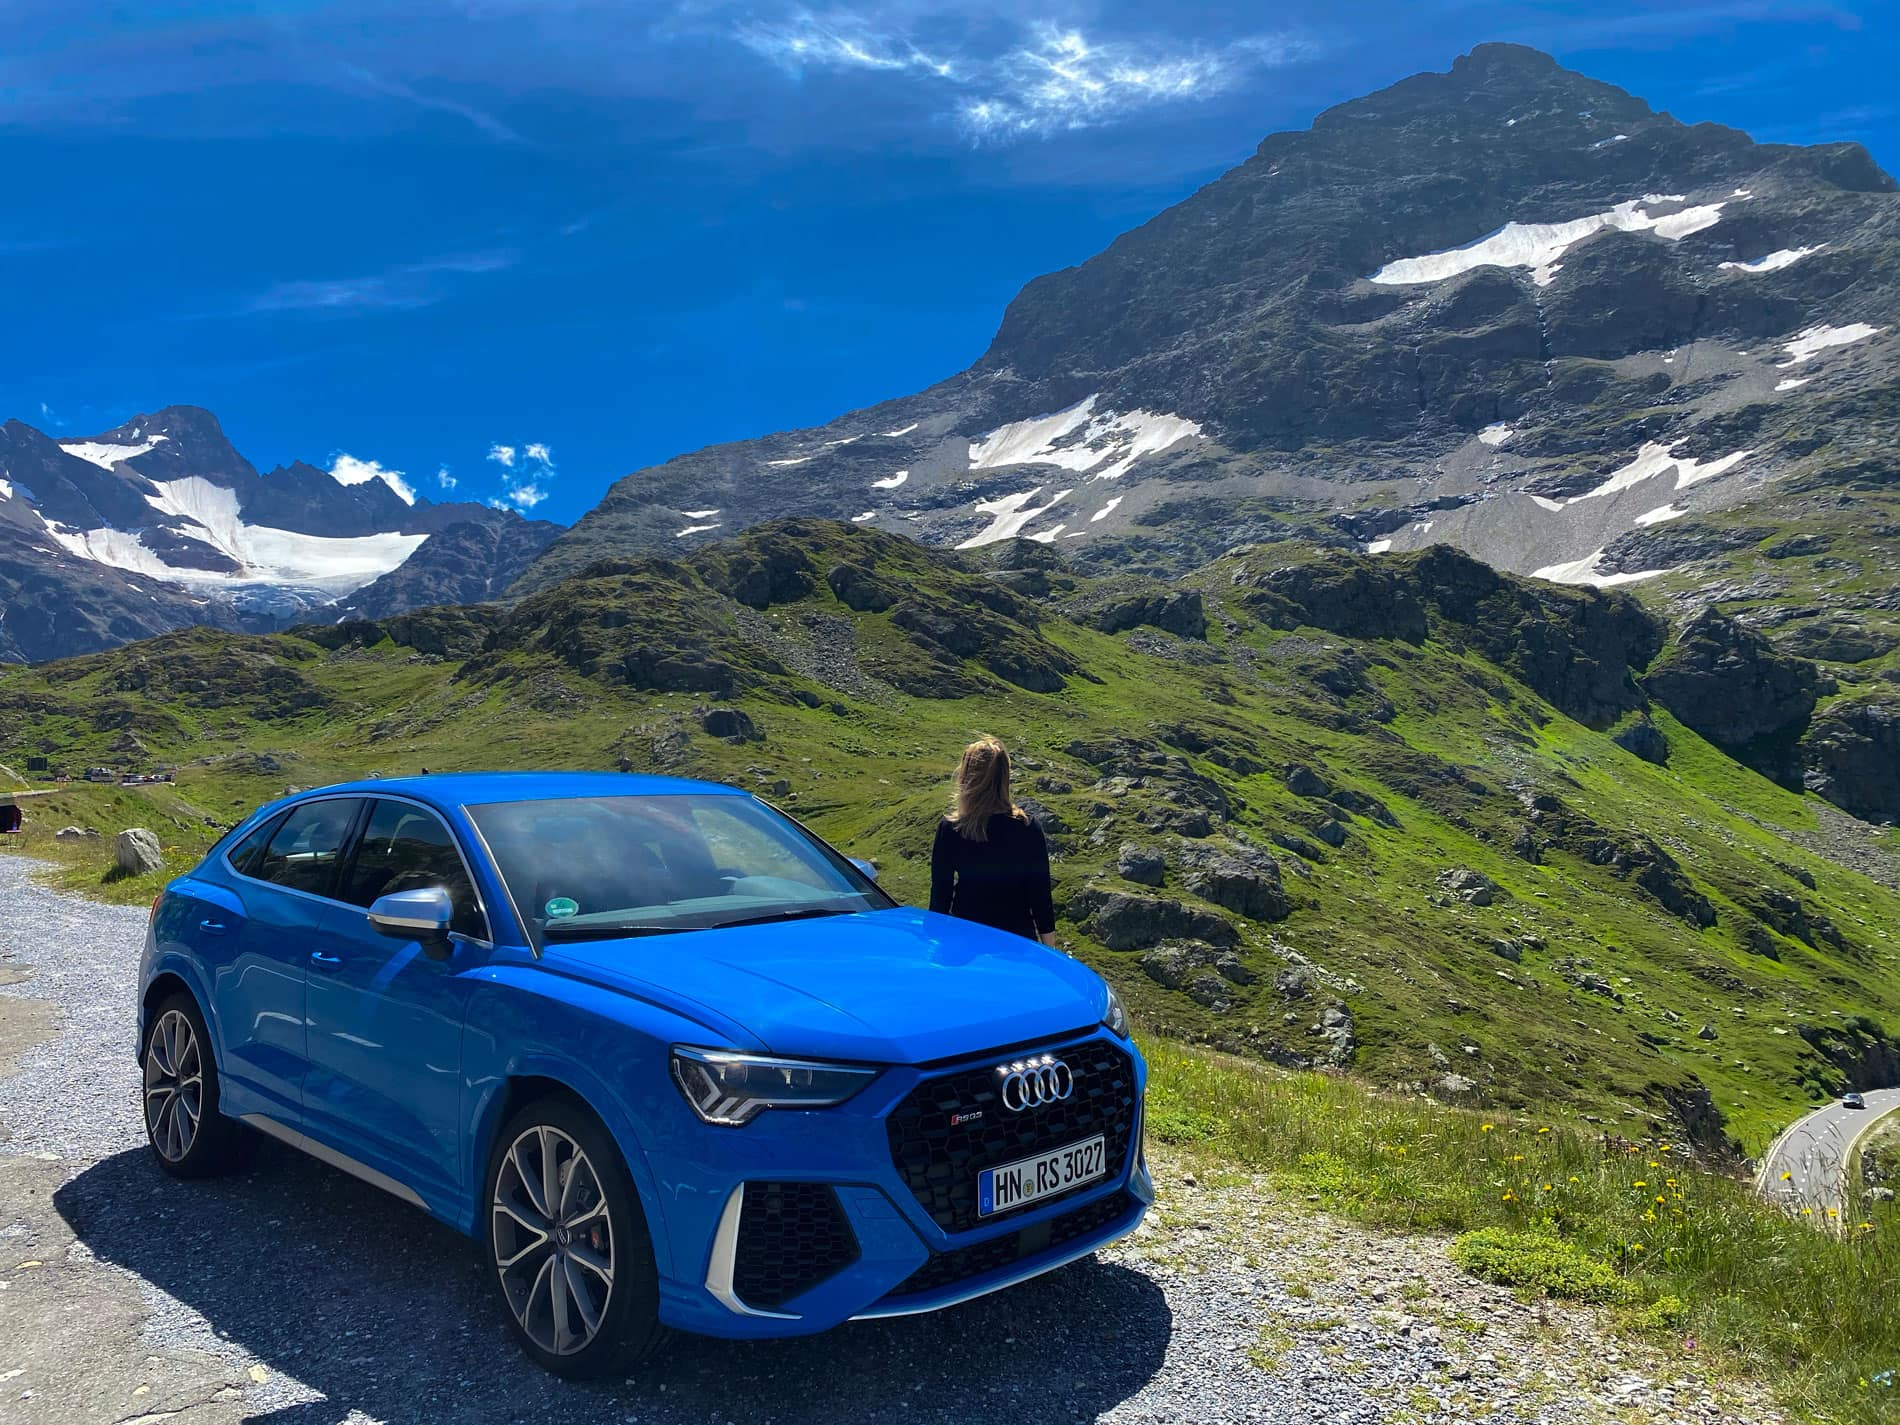 Chedi-andermatt-james-bond-roadtrip-audi-re-q3-sportback-7-high